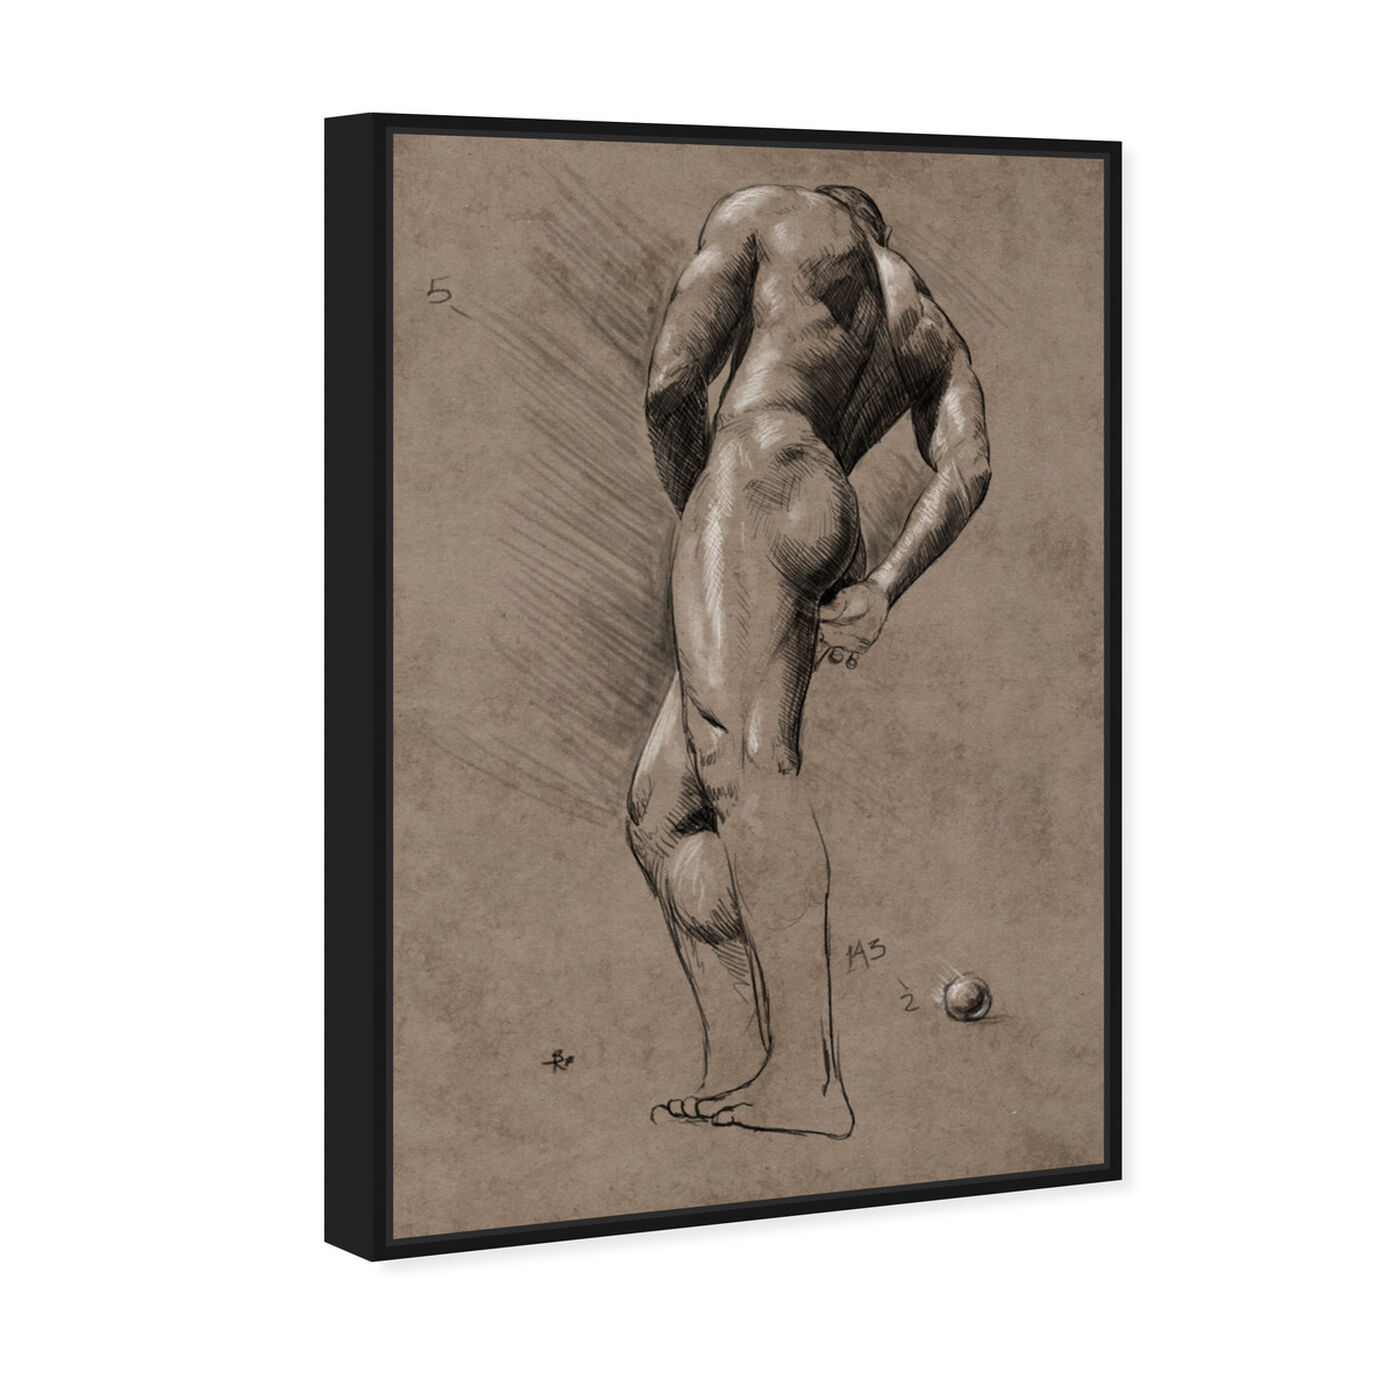 Angled view of Male Figure Study featuring people and portraits and nudes art.